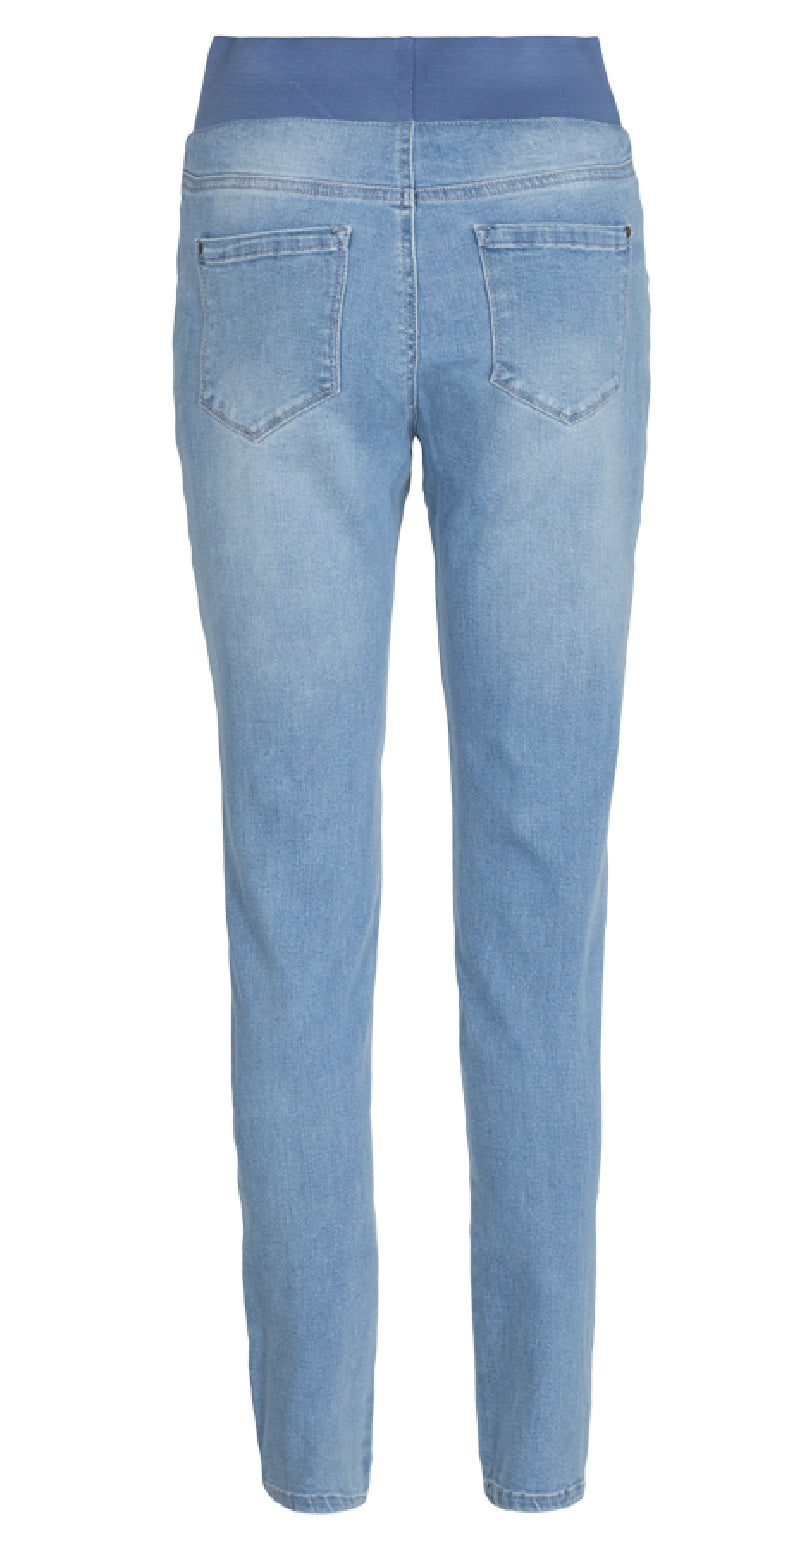 Lys blå denim shantal stretch buks